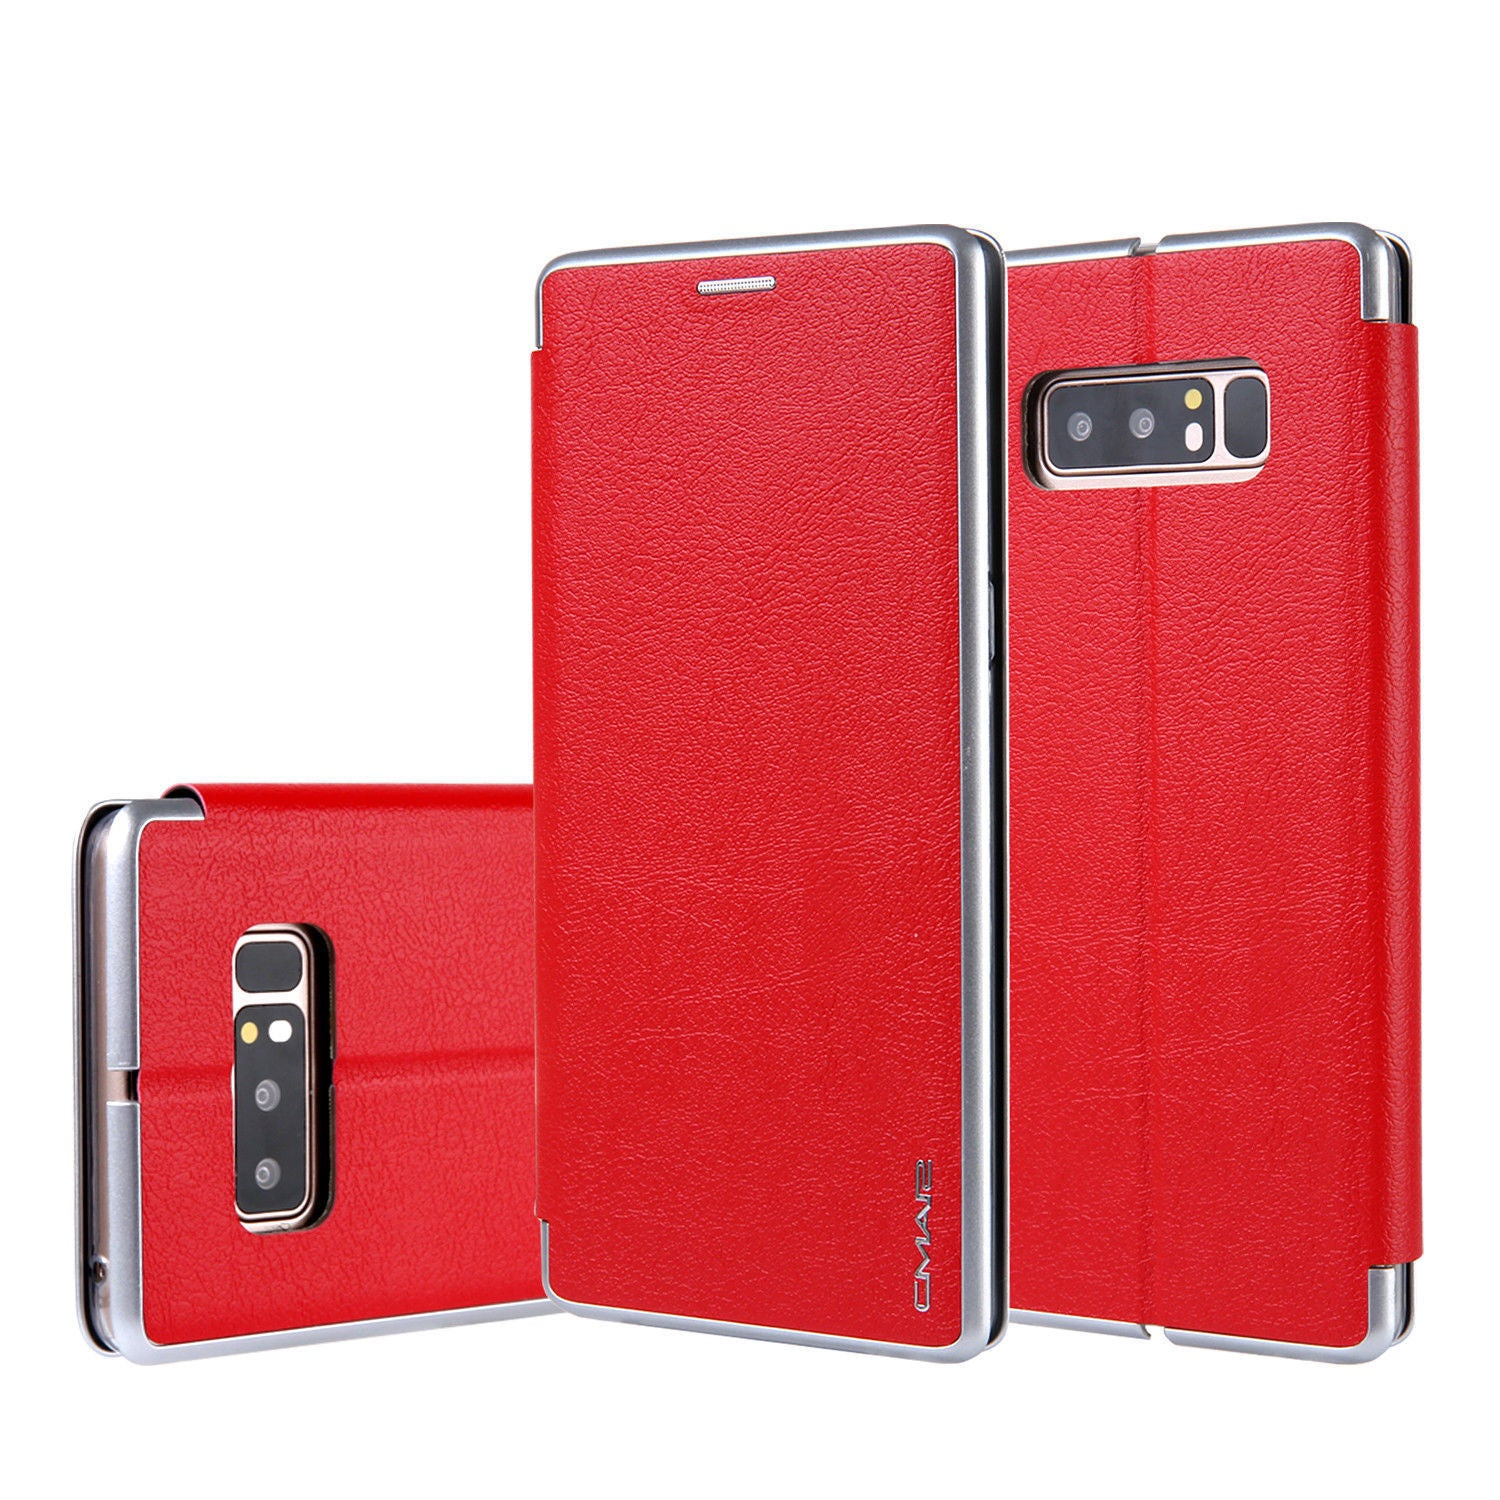 Samsung Galaxy S10 Flip Leather Wallet Card Magnetic Case Cover-Red